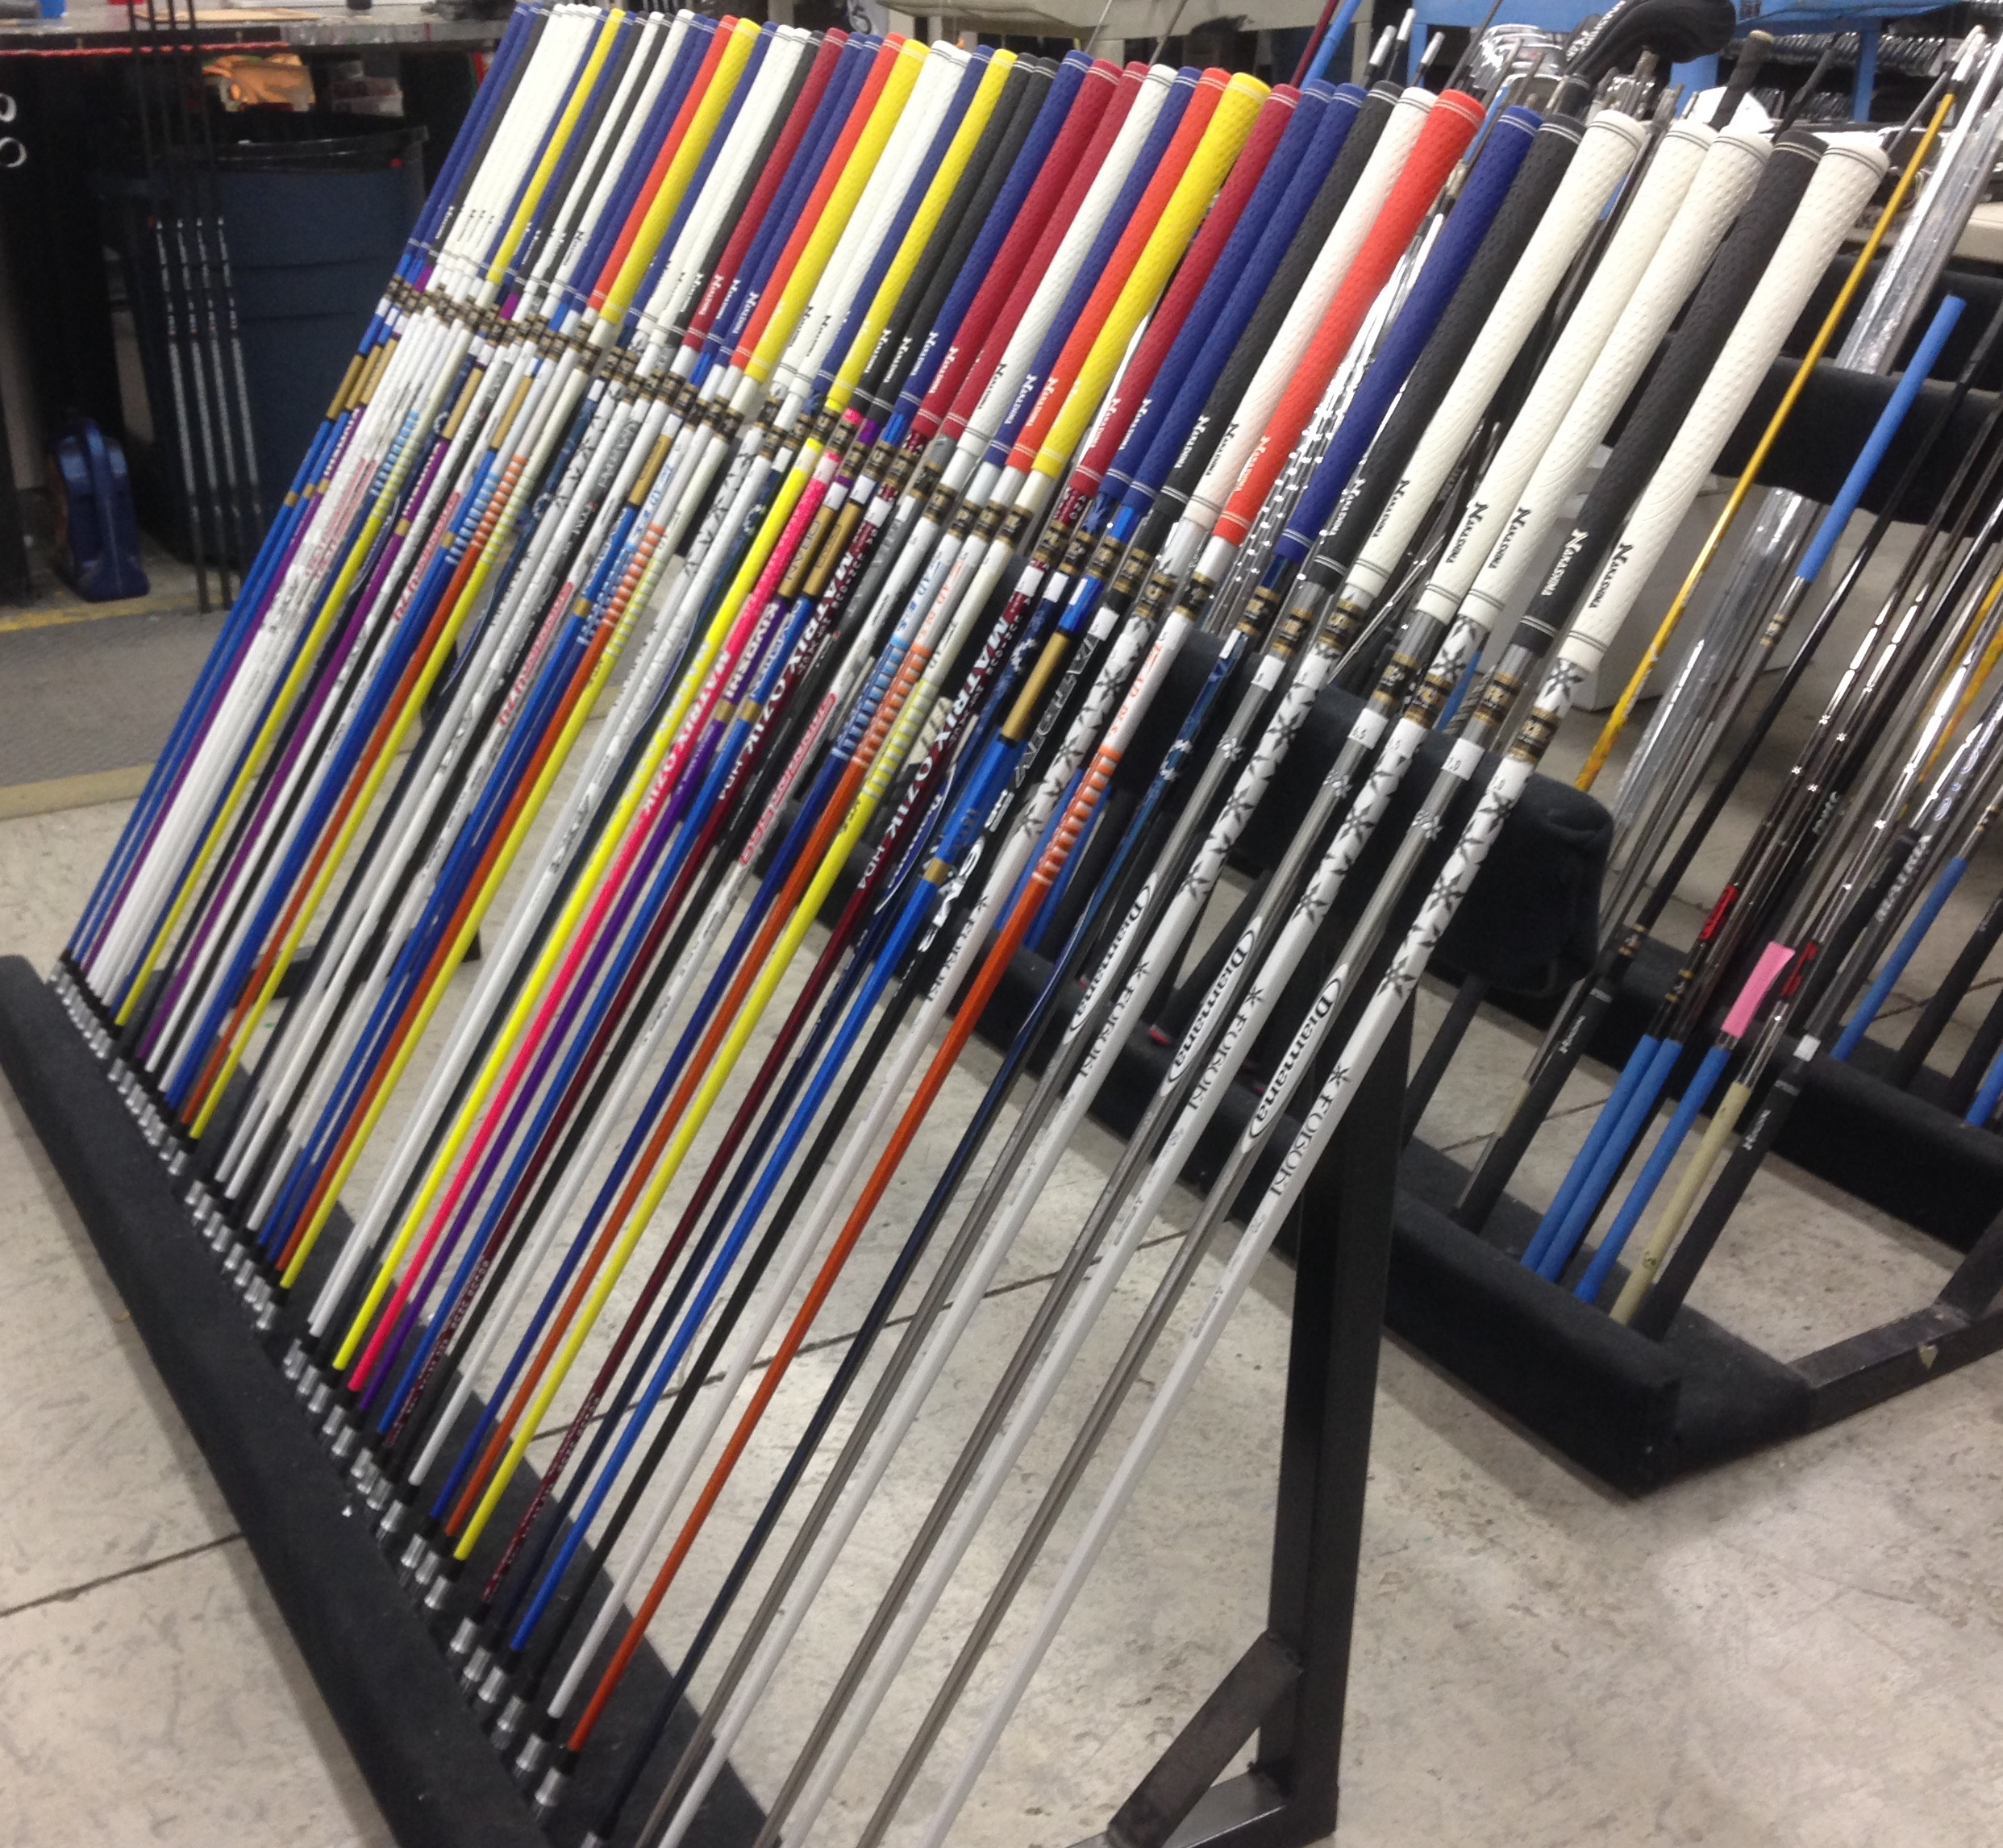 Nakashima Golf Studios have all top shafts used on the PGA and LPGA Tours. Graphite Design, Fujikura, Matrix, Mitsubishi, Oban and more. 500+ shaft in stock to try, test and buy with Nakashima Fit & Play Technology.